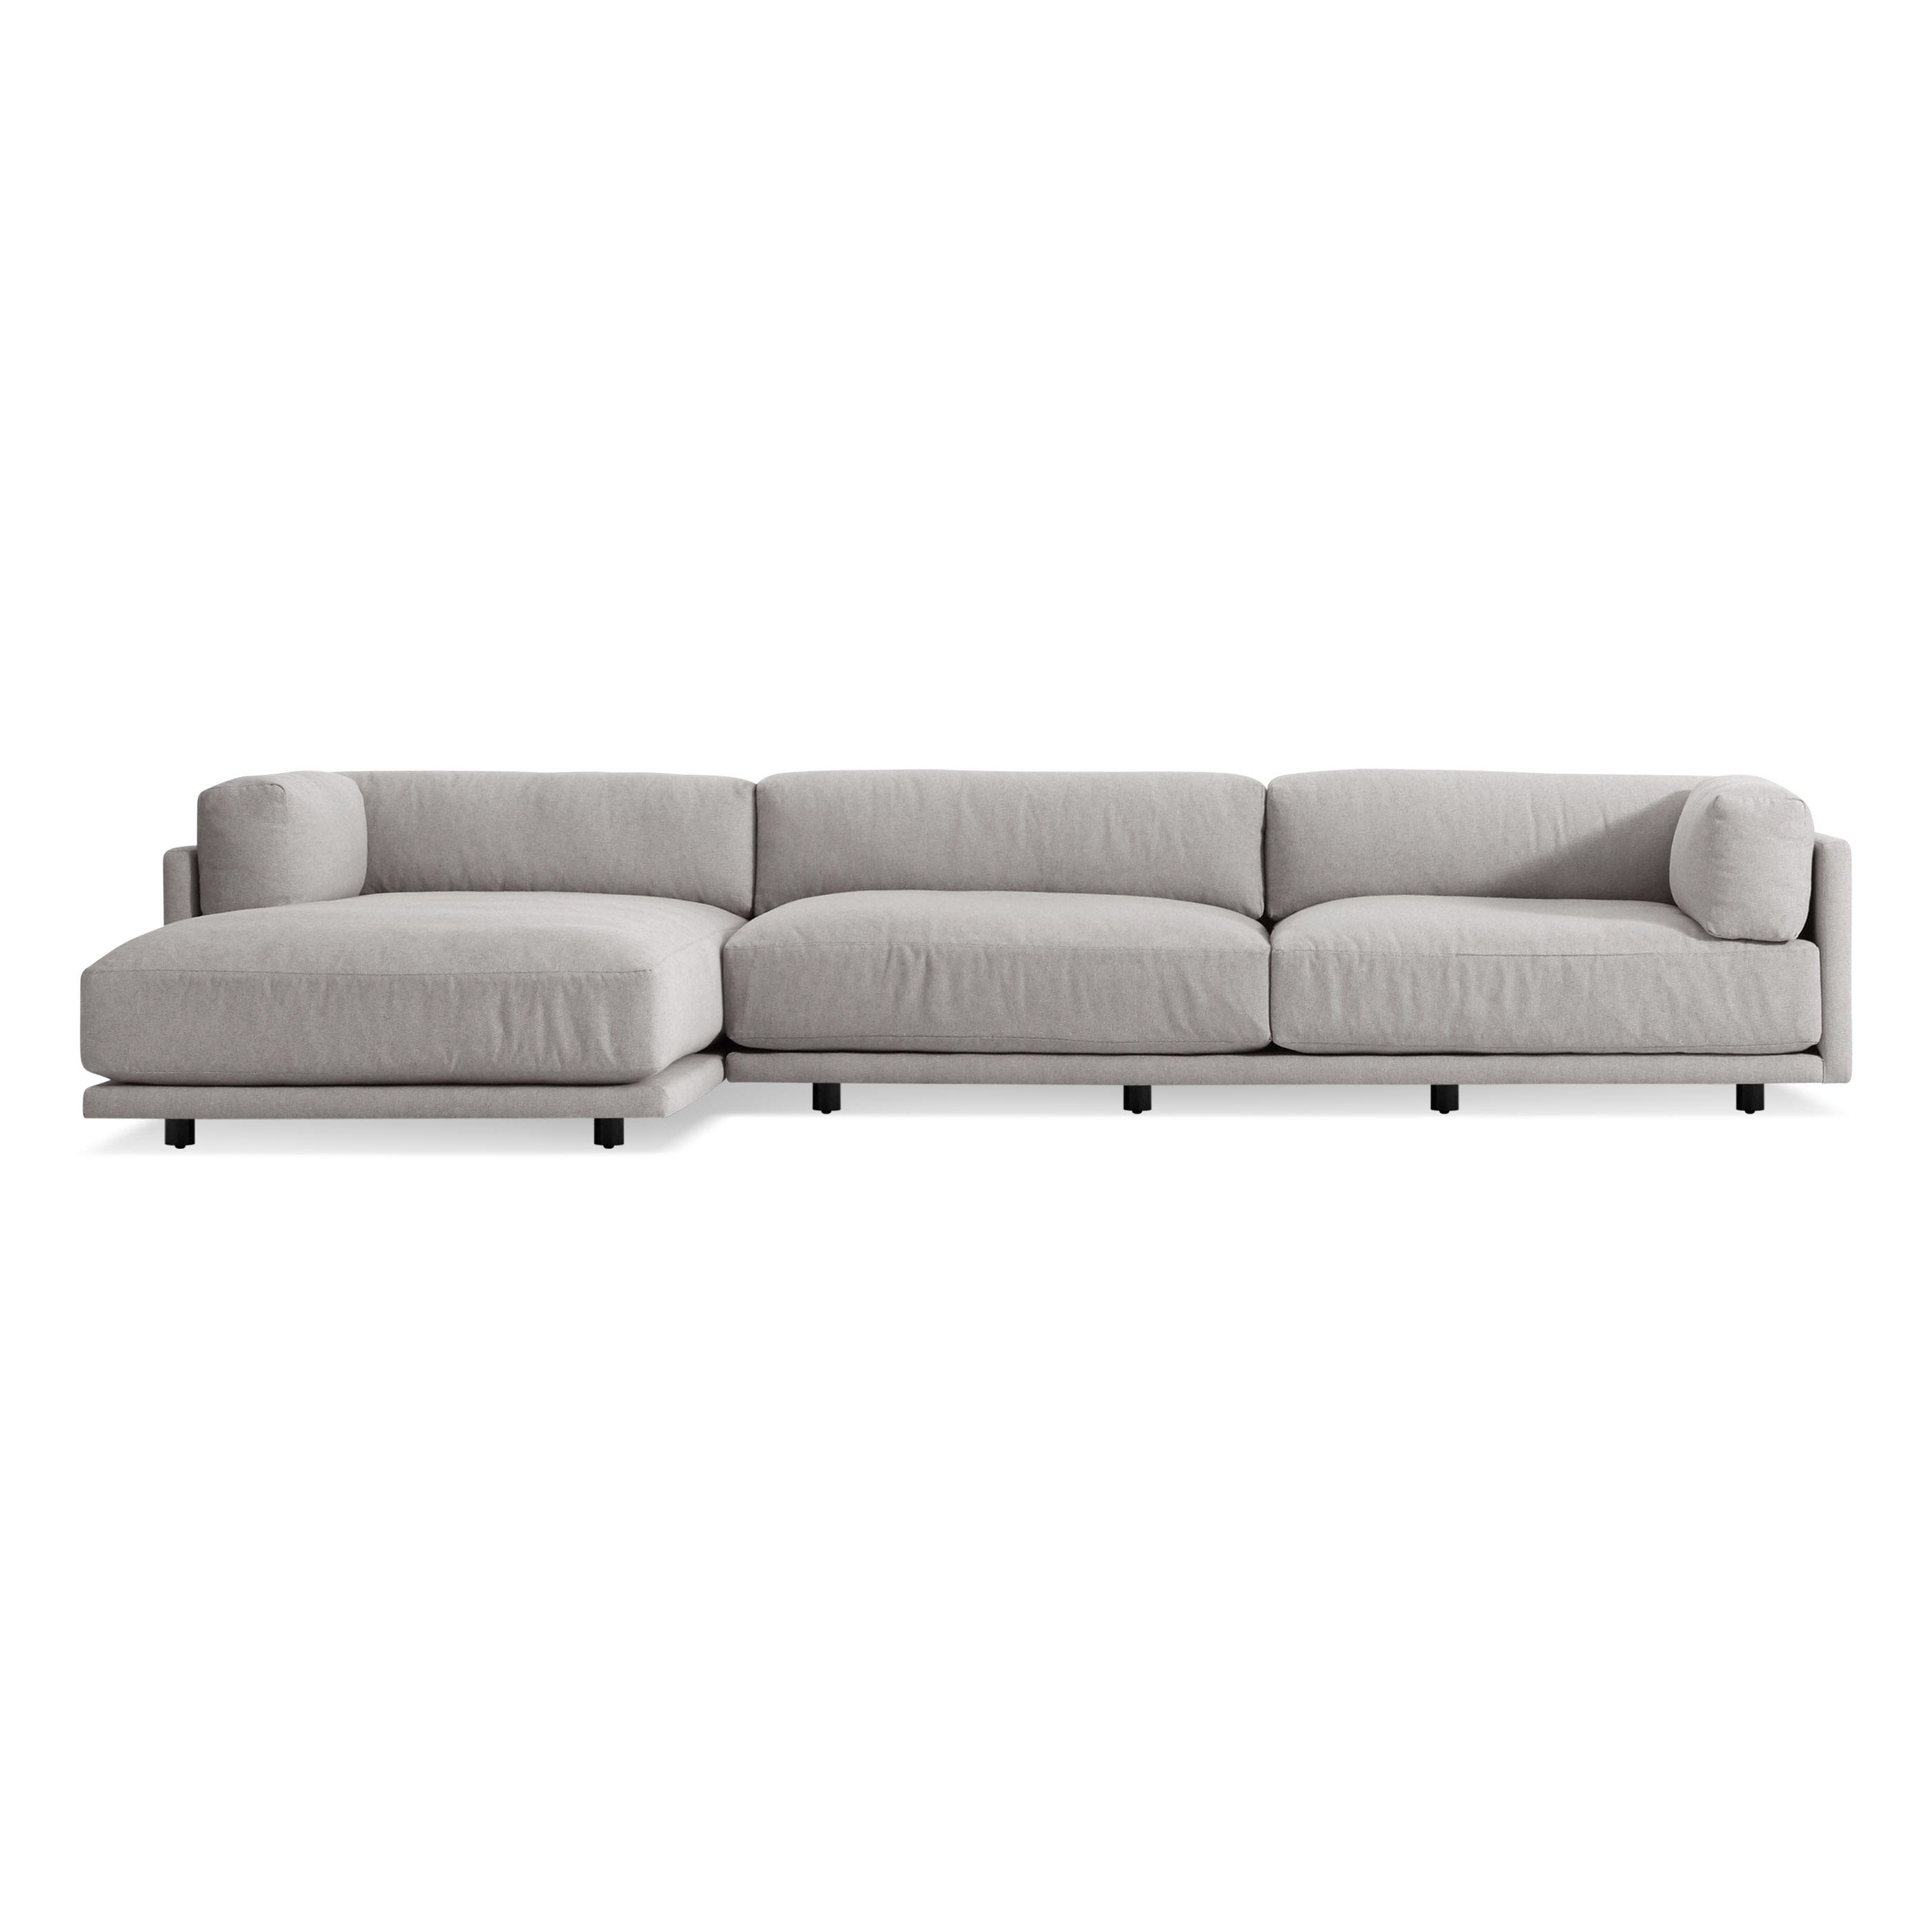 s chaise by of collection mid pin hall dering one kravet modern from buy designer furniture to pasadena arm order made century lounges with arms